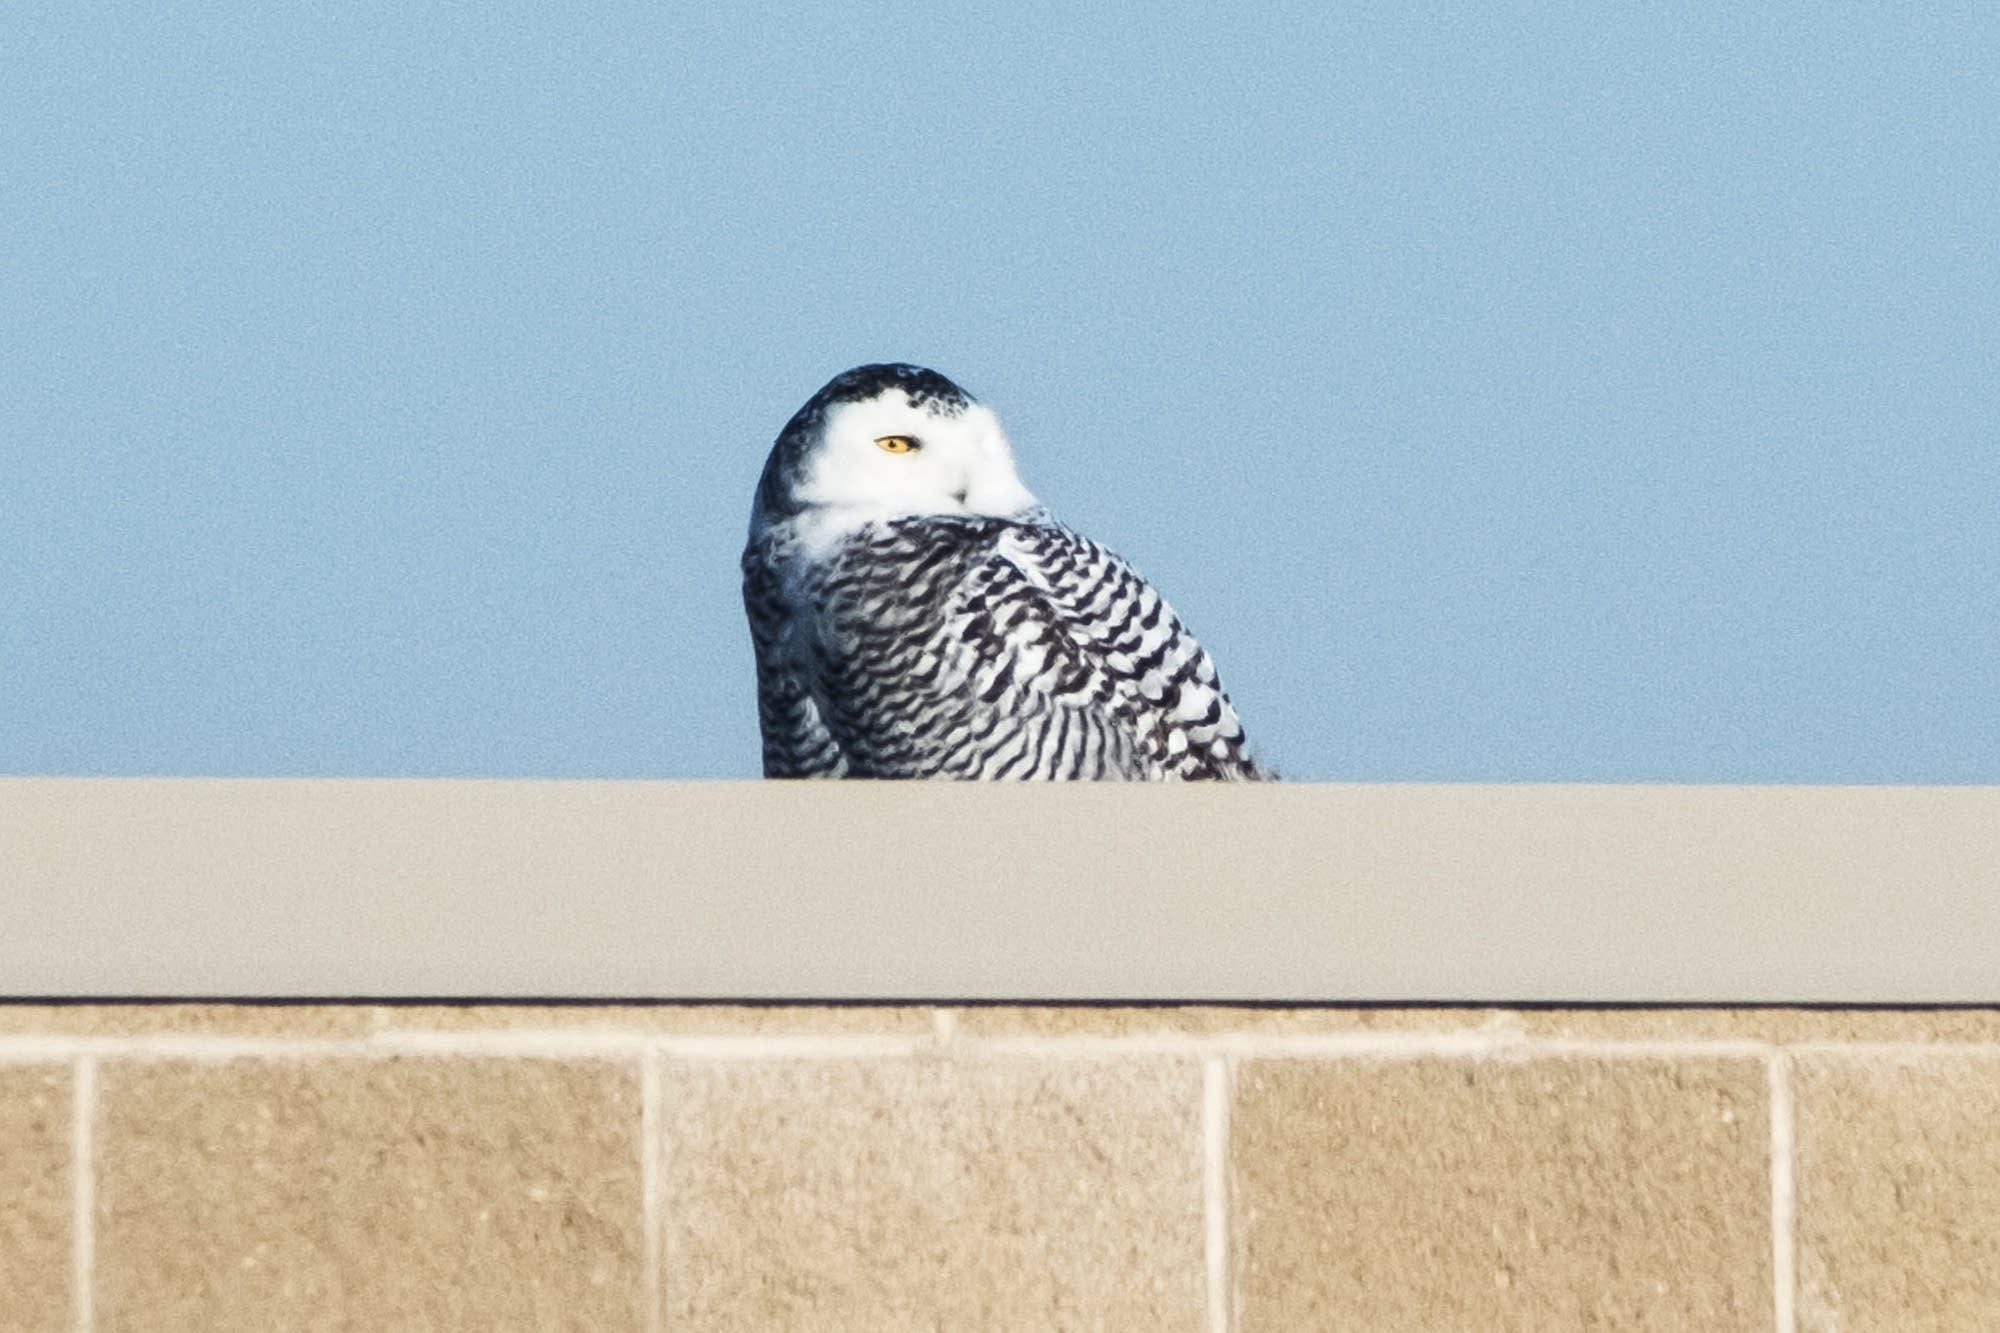 A snowy owl scans the tundra-like landscape of the airport